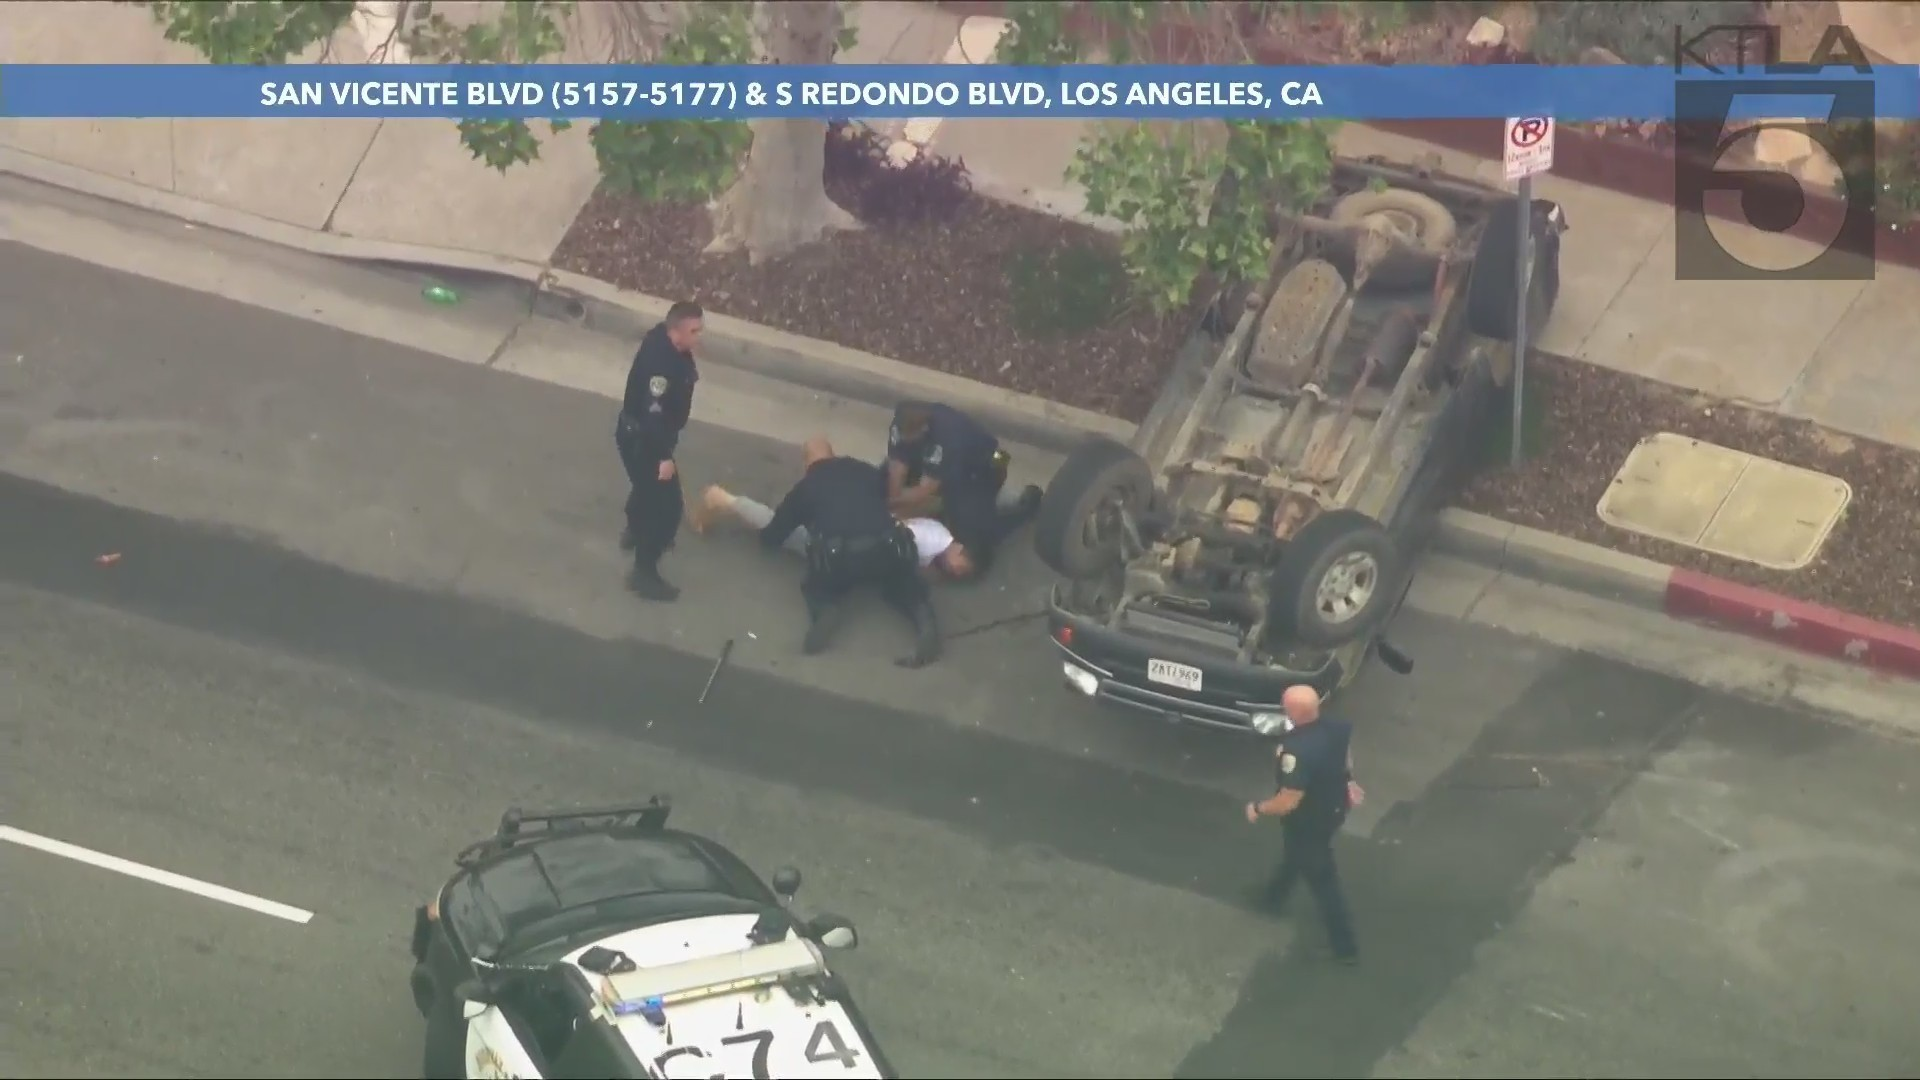 A driver was taken into custody following a pursuit through the South Los Angeles area on May 13, 2021. (KTLA)